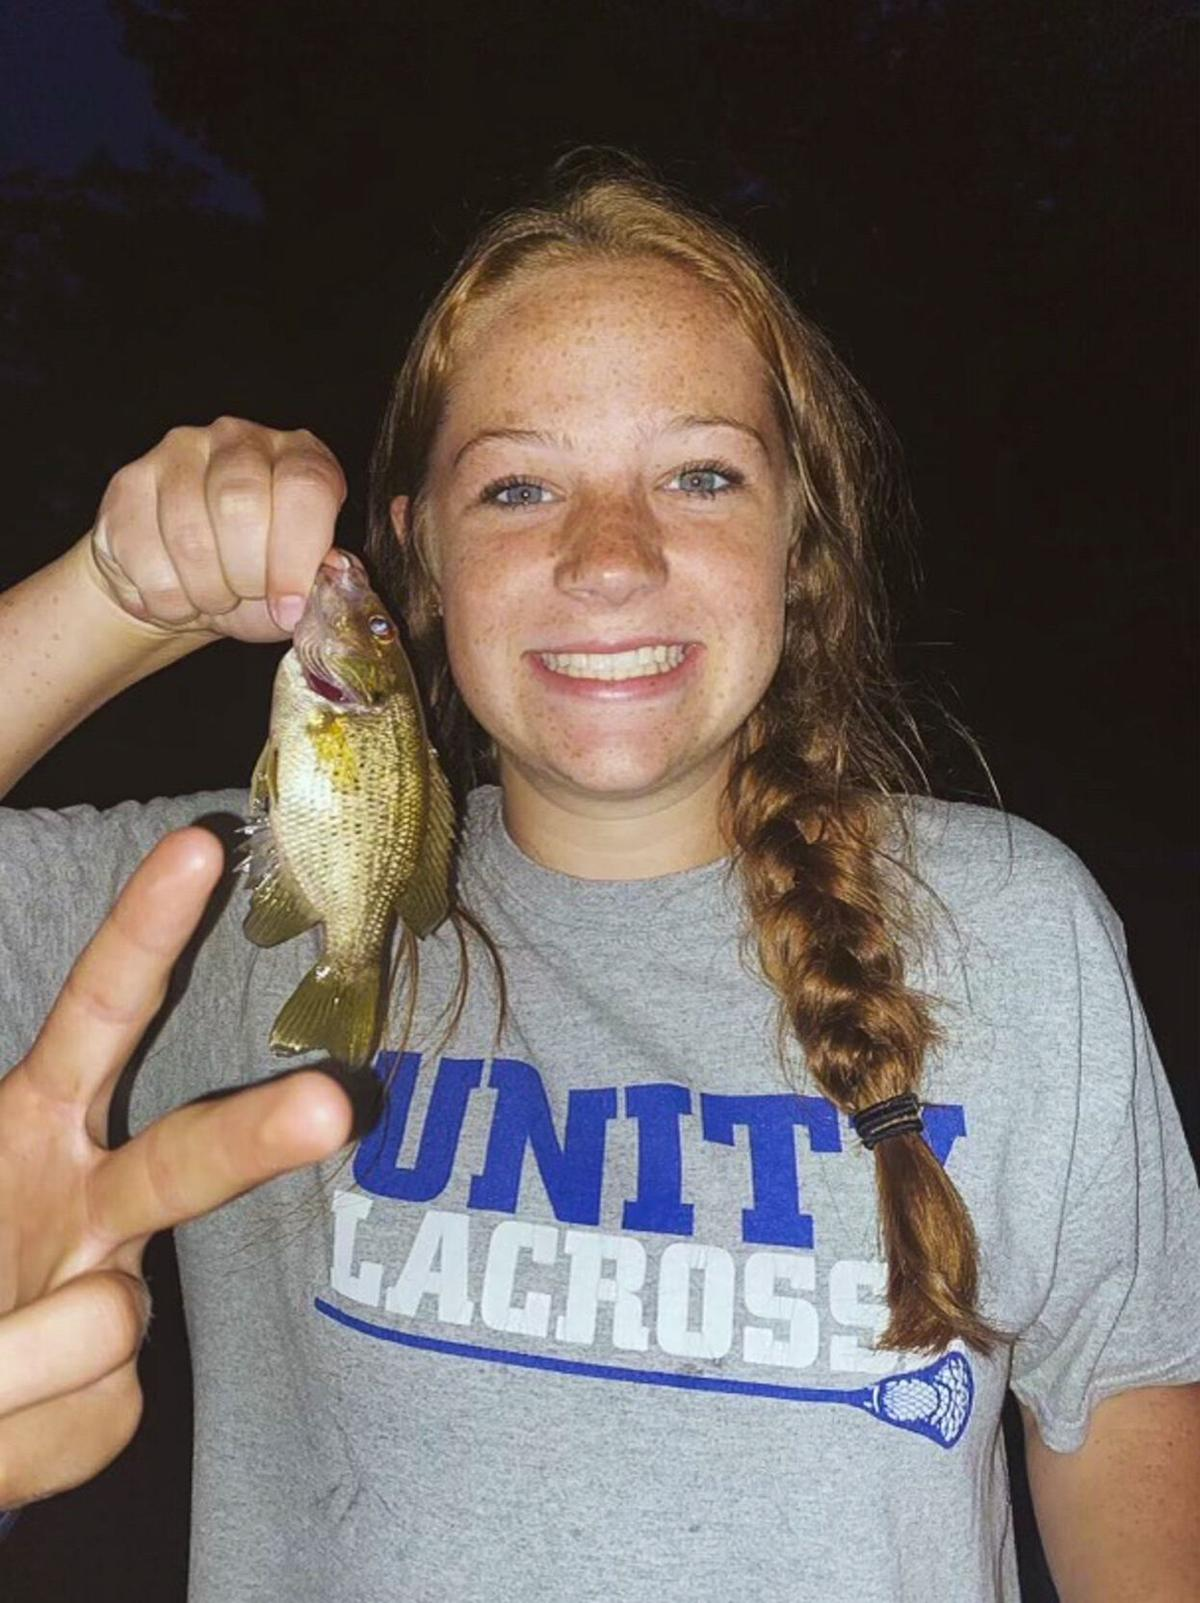 Family shares memories of young crash victim